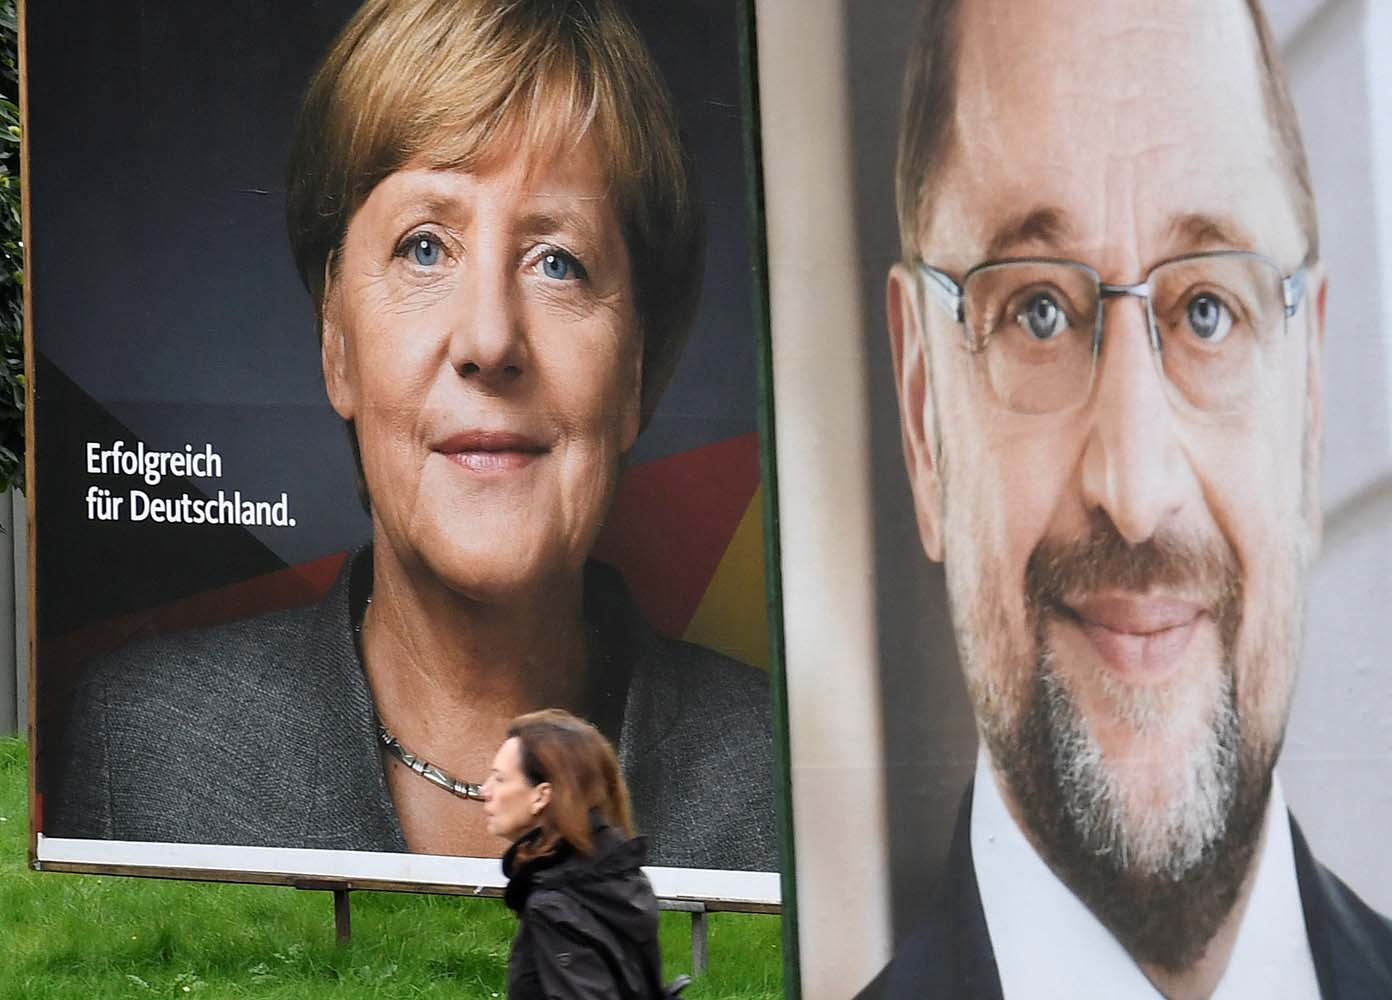 Election posters of German Chancellor Angela Merkel of the Christian Democratic Party CDU and Social Democratic Party SPD leader and top candidate Martin Schulz are seen in Hamburg, Germany, September 24, 2017. REUTERS/Fabian Bimmer